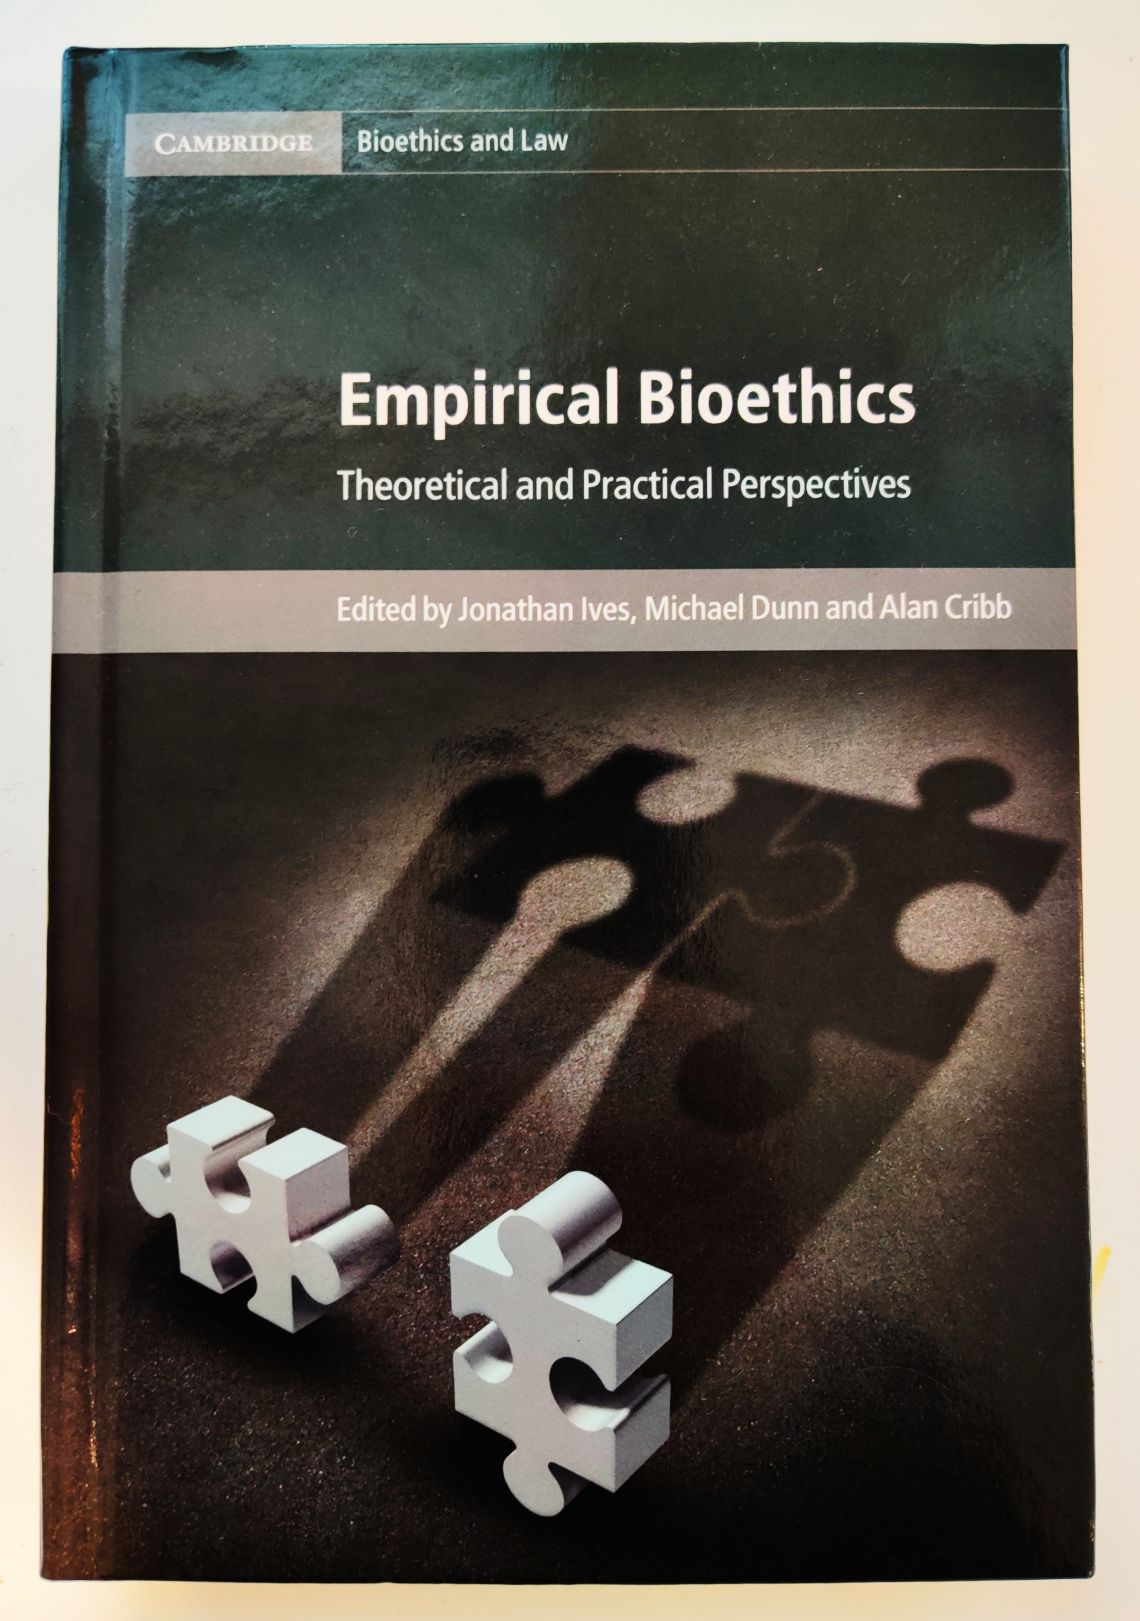 Bioethics has long been accepted as an interdisciplinary field. The recent 'empirical turn' in bioethics is, however, creating challenges that move beyond those of simple interdisciplinary collaboration, as researchers grapple with the methodological, empirical and meta-ethical challenges of combining the normative and the empirical, as well as navigating the difficulties that can arise from attempts to transcend traditional disciplinary boundaries. Empirical Bioethics: Practical and Theoretical Perspectives brings together contributions from leading experts in the field which speak to these challenges, providing insight into how they can be understood and suggestions for how they might be overcome. Combining discussions of meta-ethical challenges, examples of different methodologies for integrating empirical and normative research, and reflection on the challenges of conducting and publishing such work, this book will both introduce the novice to the field and challenge the expert.